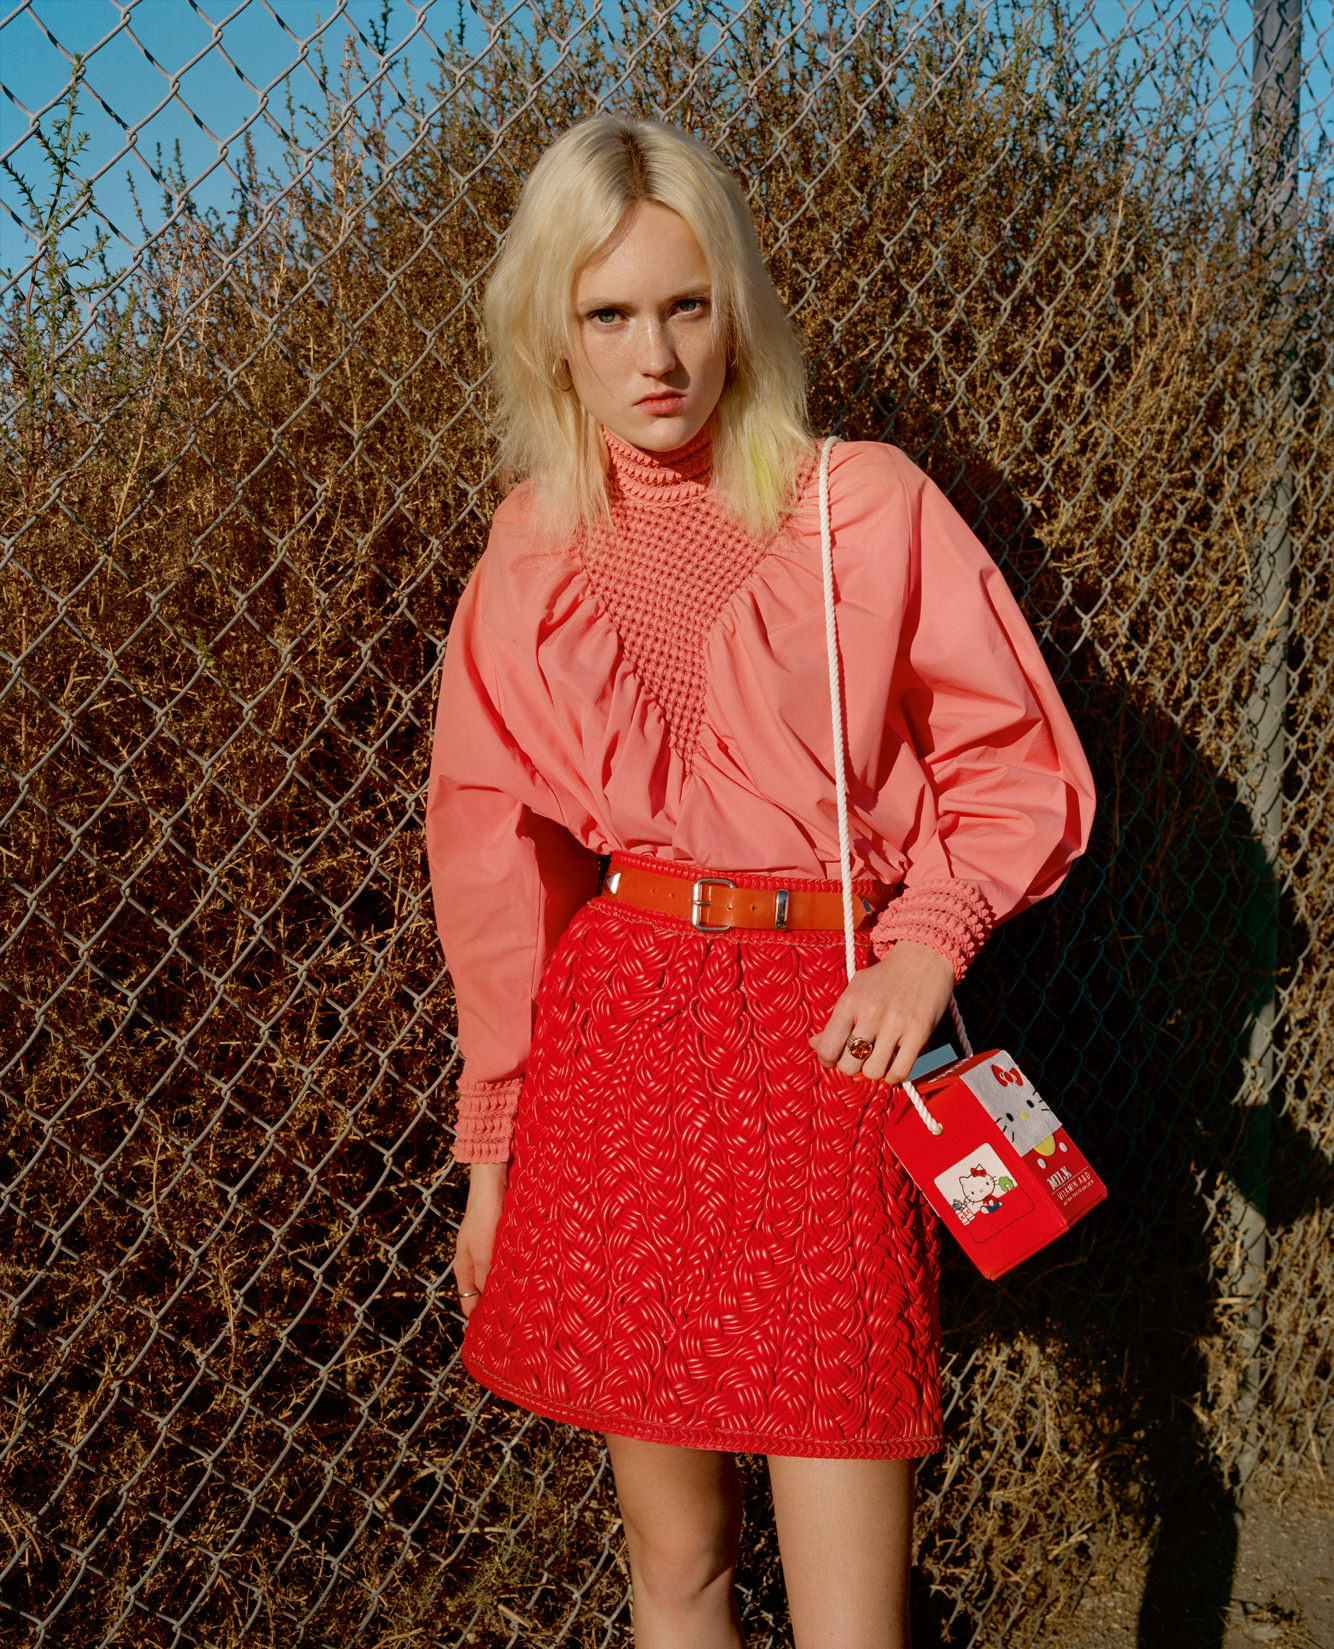 Top and skirt, FENDI. Bag, OLYMPIA LE-TAN. Belt, FUNKYTOWN. Earrings, CARTIER. Rings, SEARCH&DESTROY.